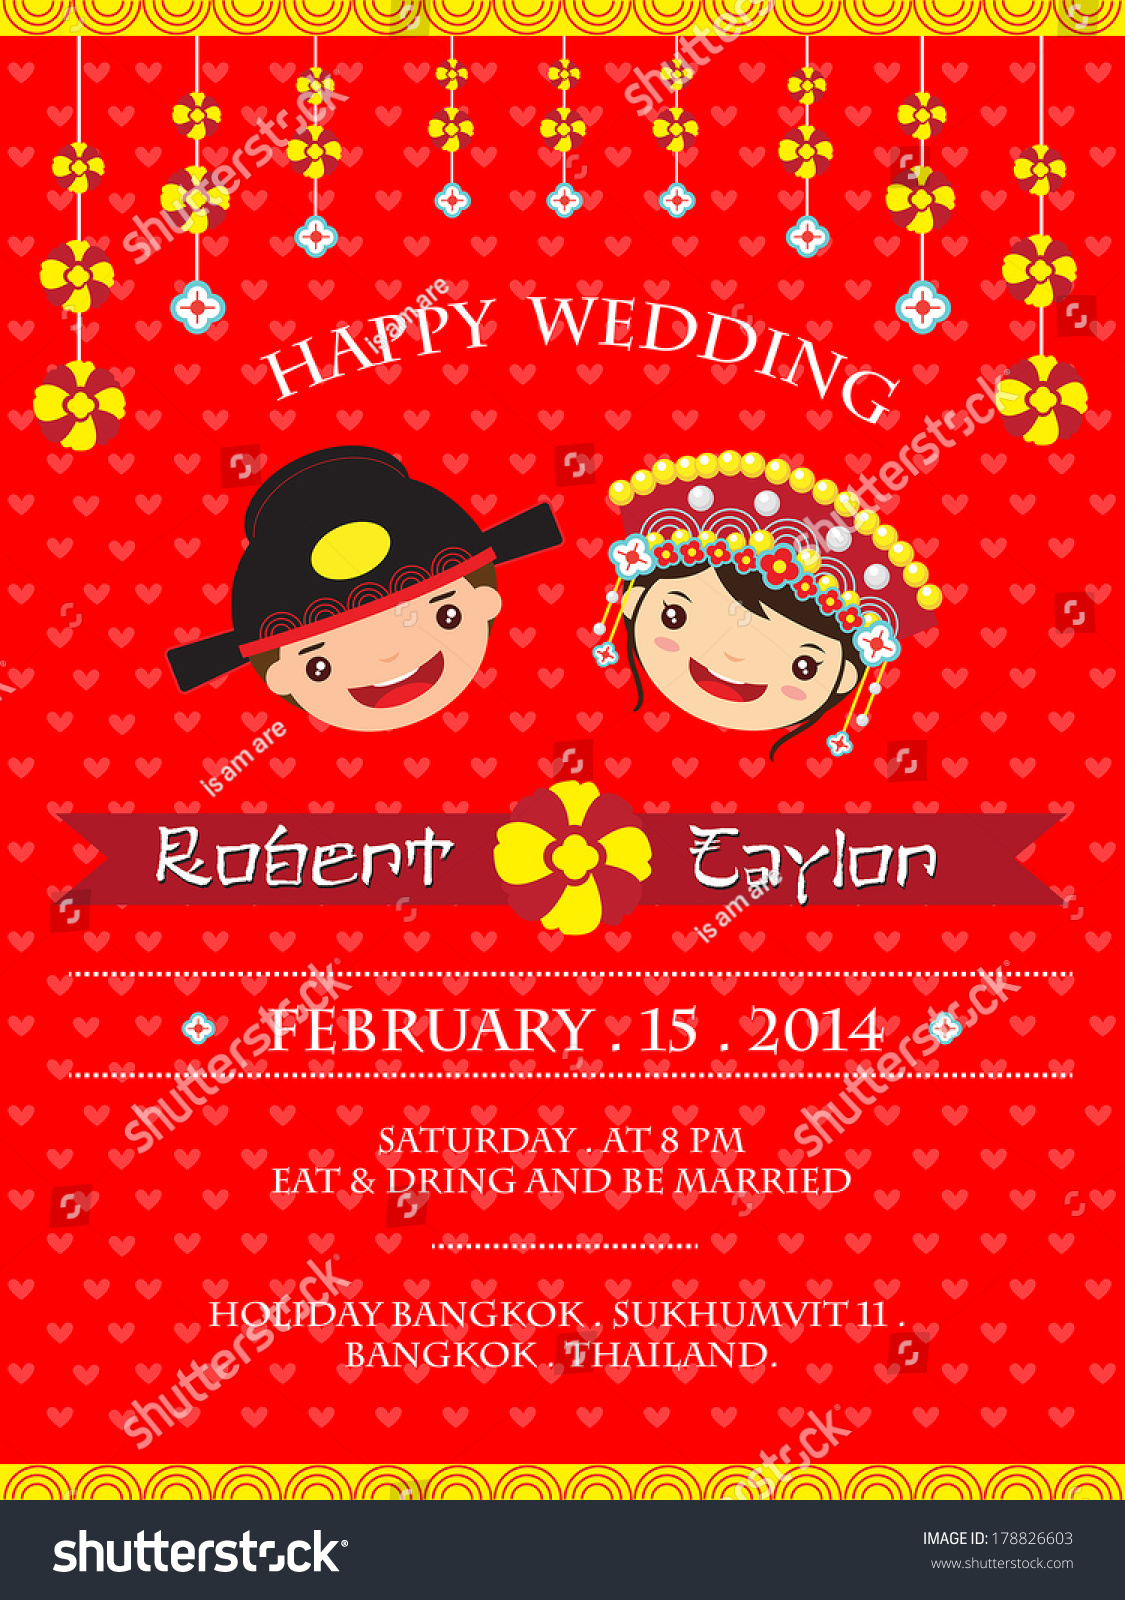 Chinese Wedding Invitation Card Template Cartoon Vector – Chinese Wedding Invitation Cards